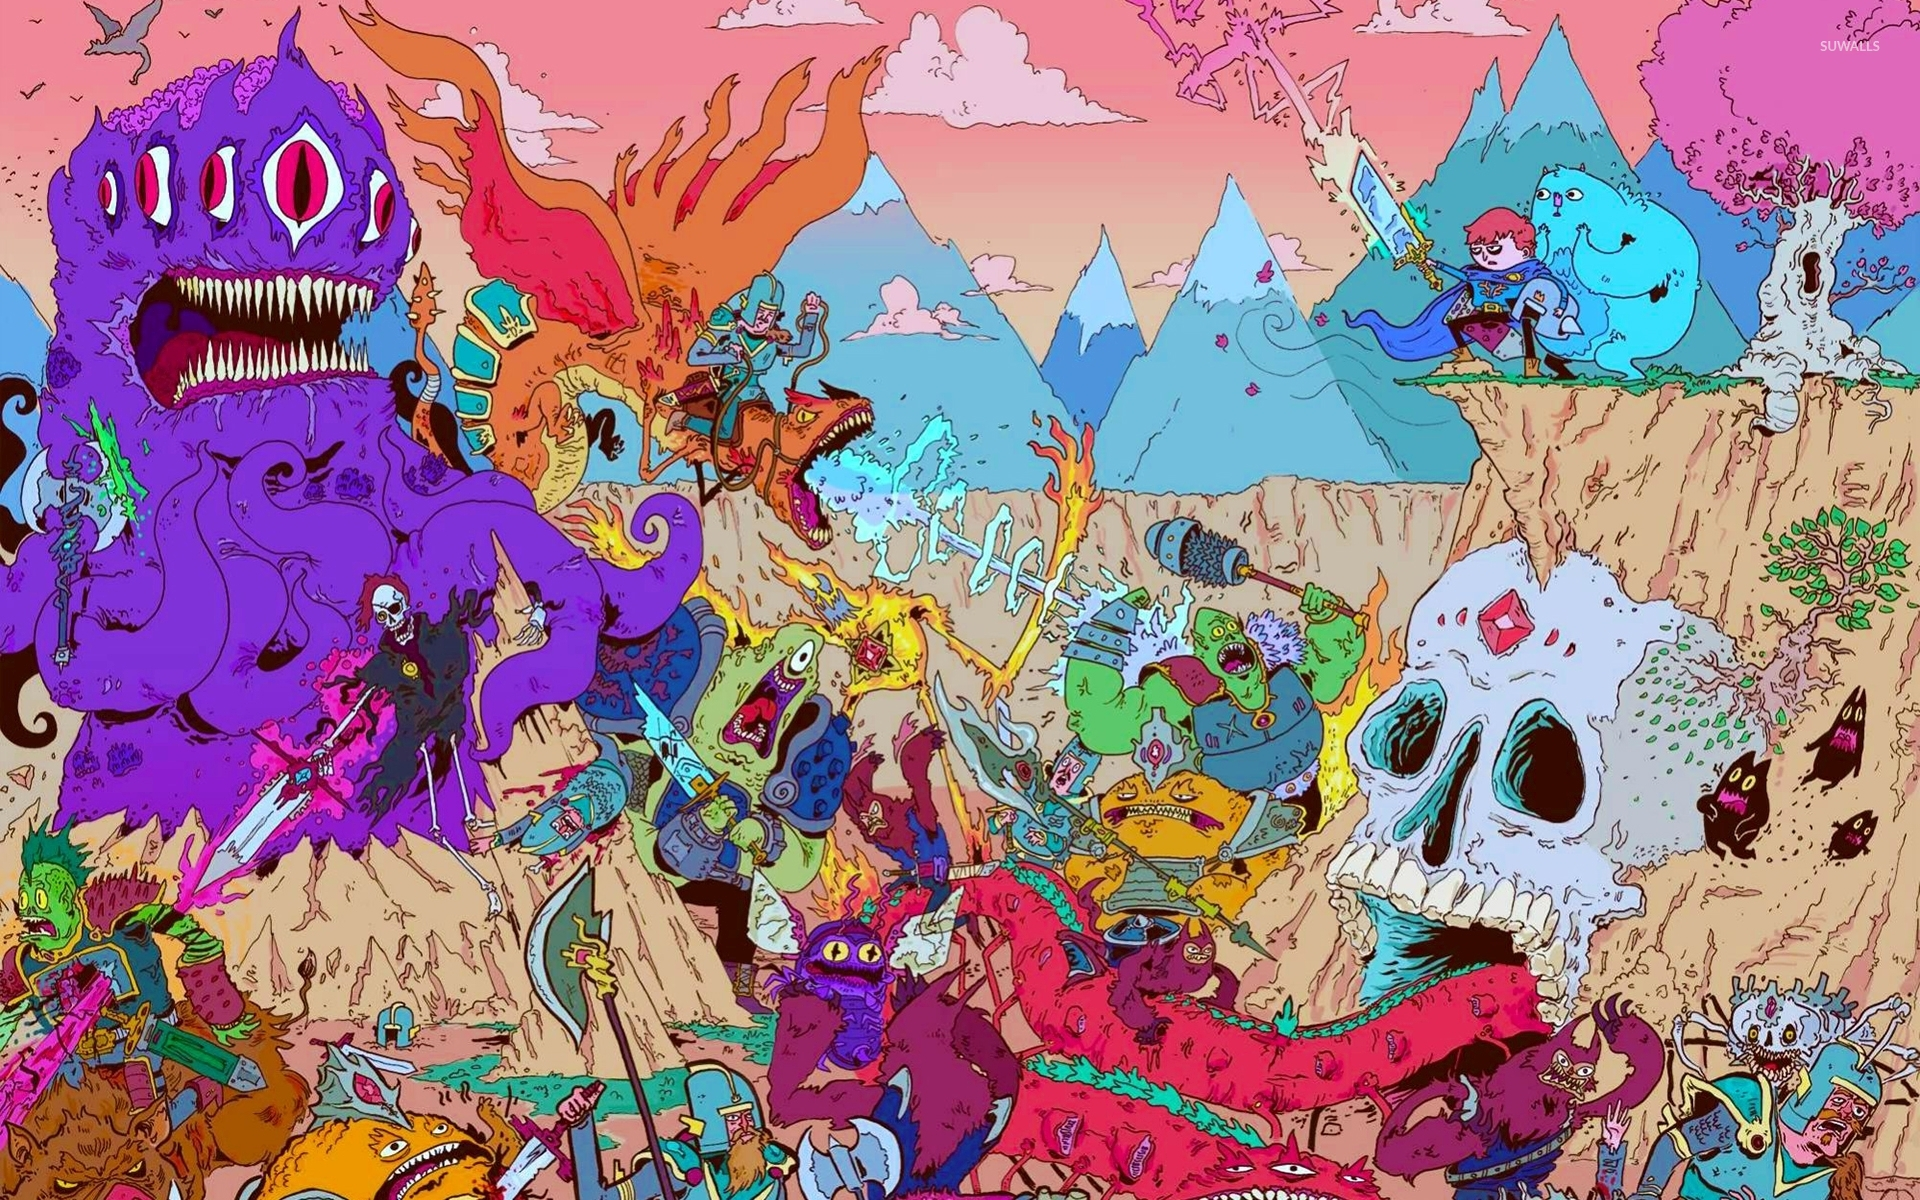 Adventure time 11 wallpaper cartoon wallpapers 41478 adventure time 11 wallpaper thecheapjerseys Choice Image